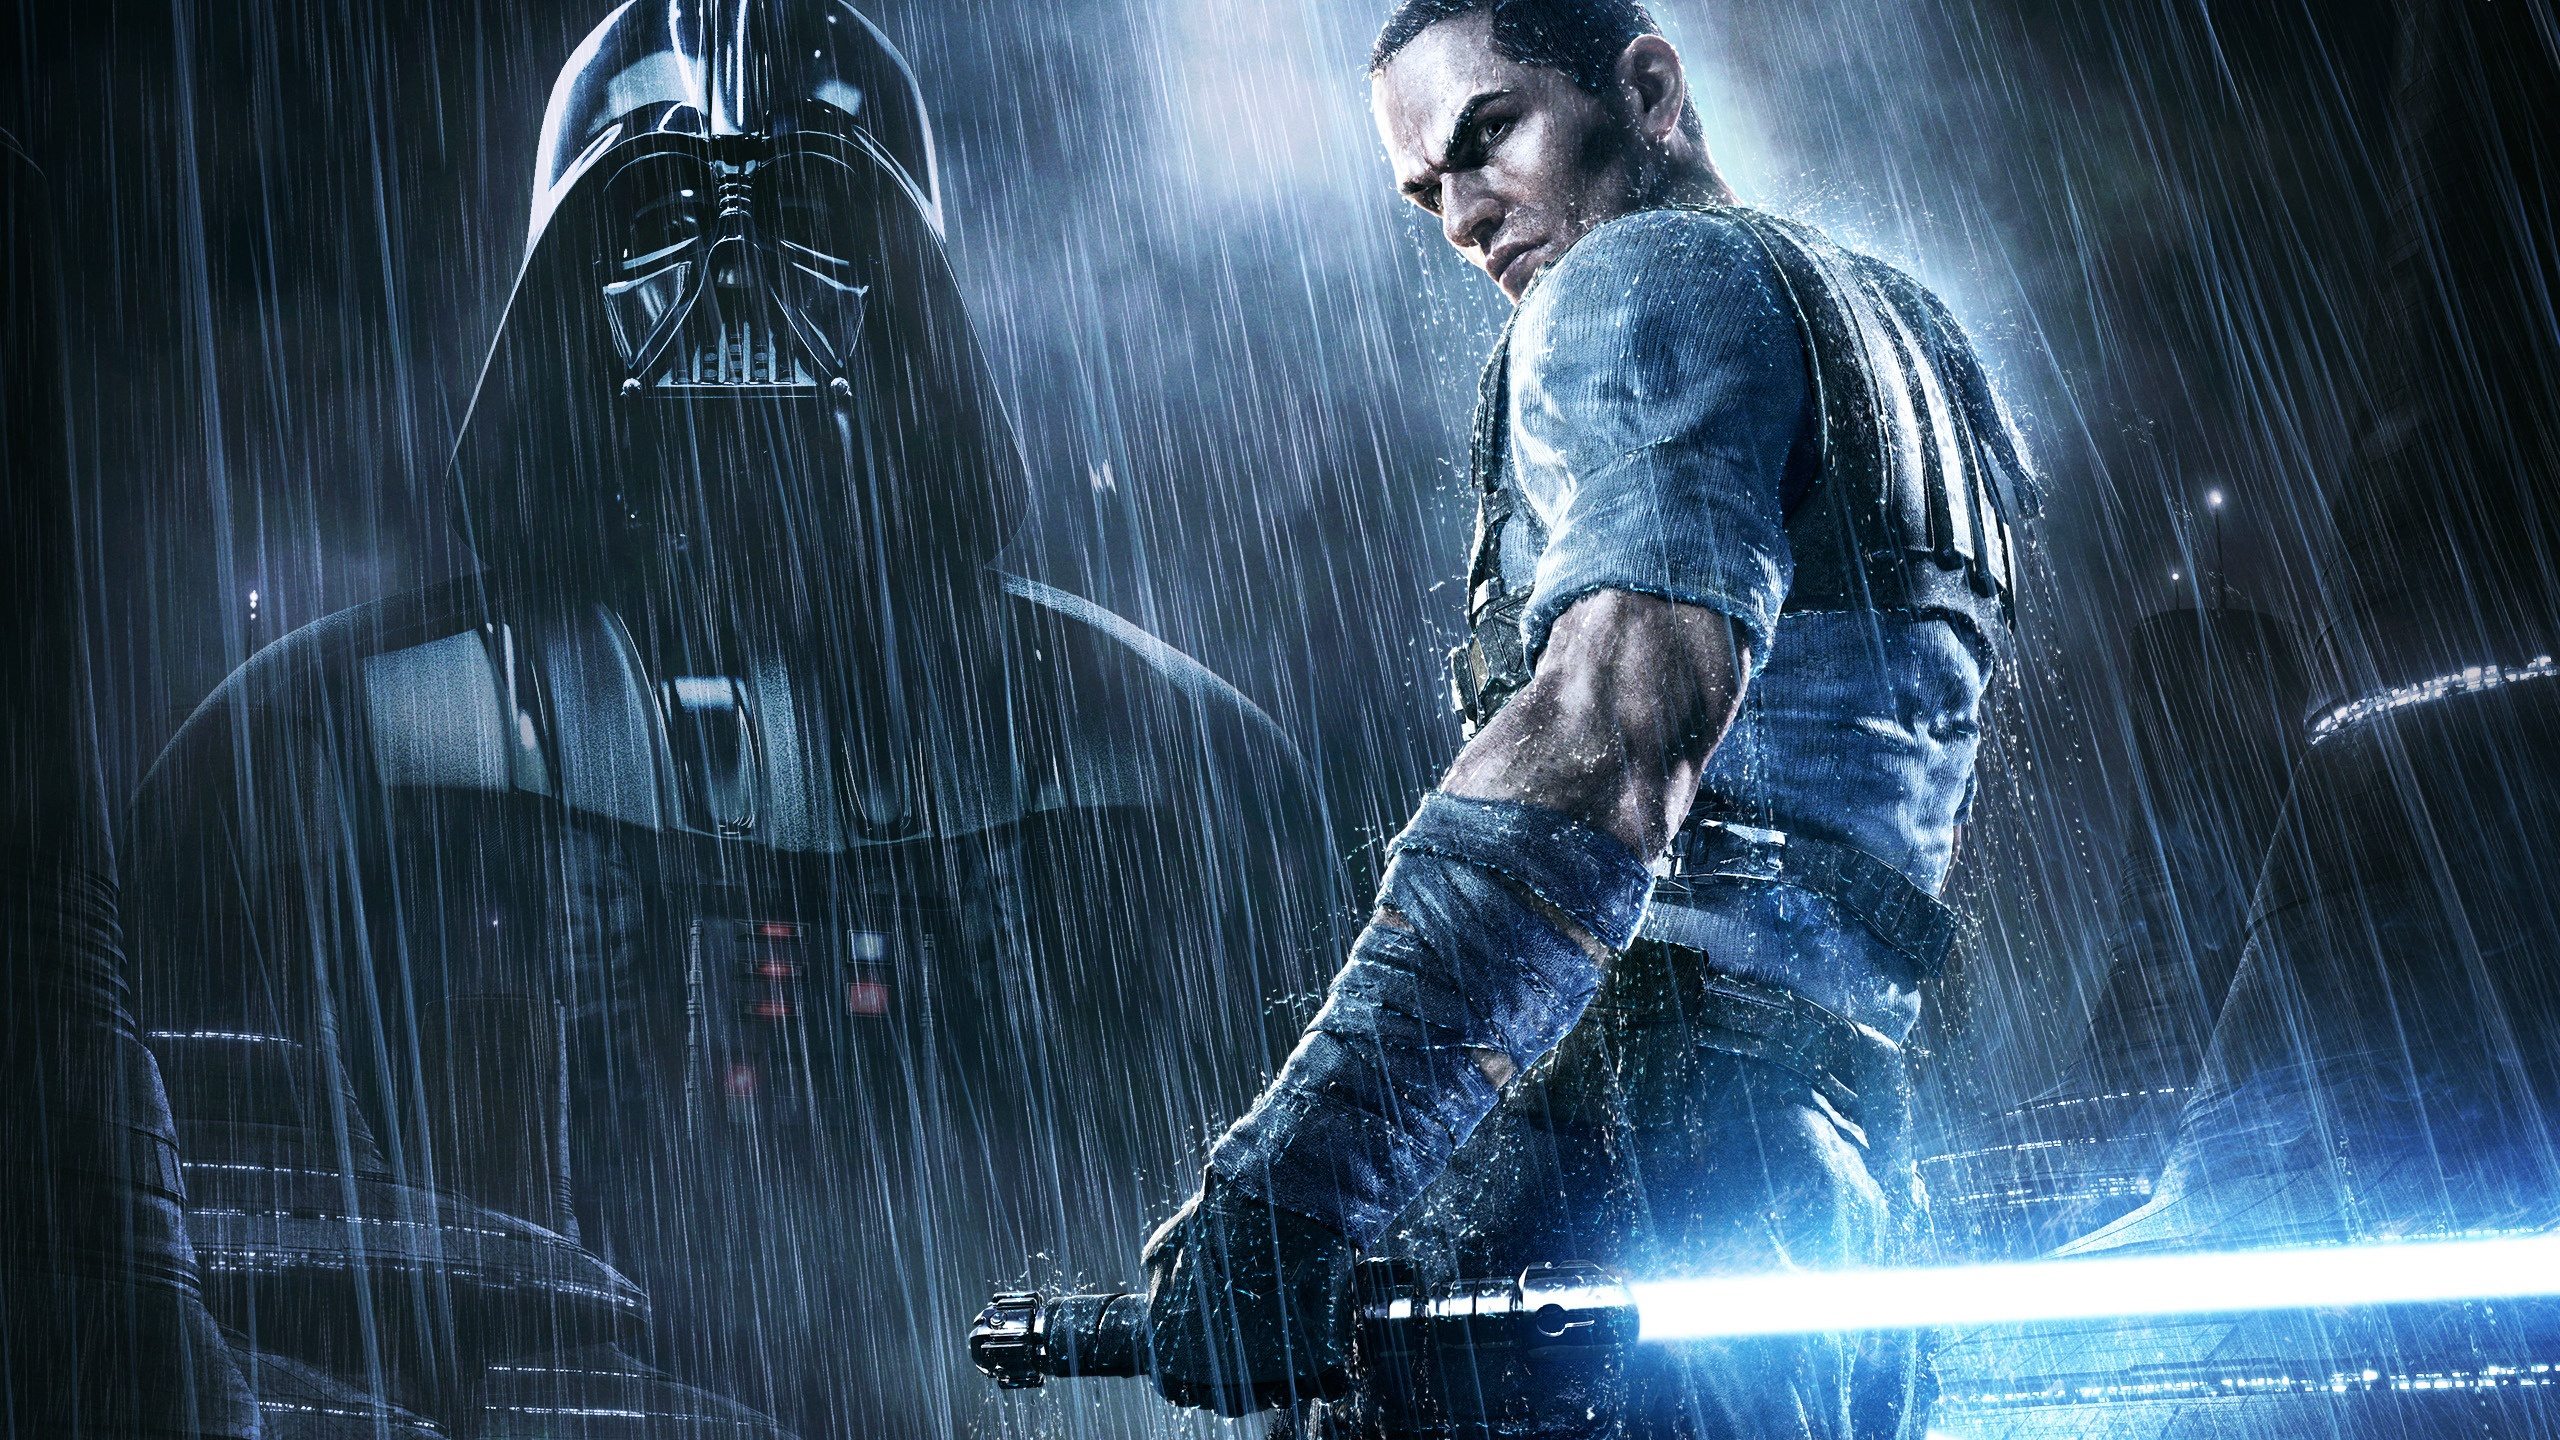 star wars force unleashed 2 wallpapers 28365 2560x1440